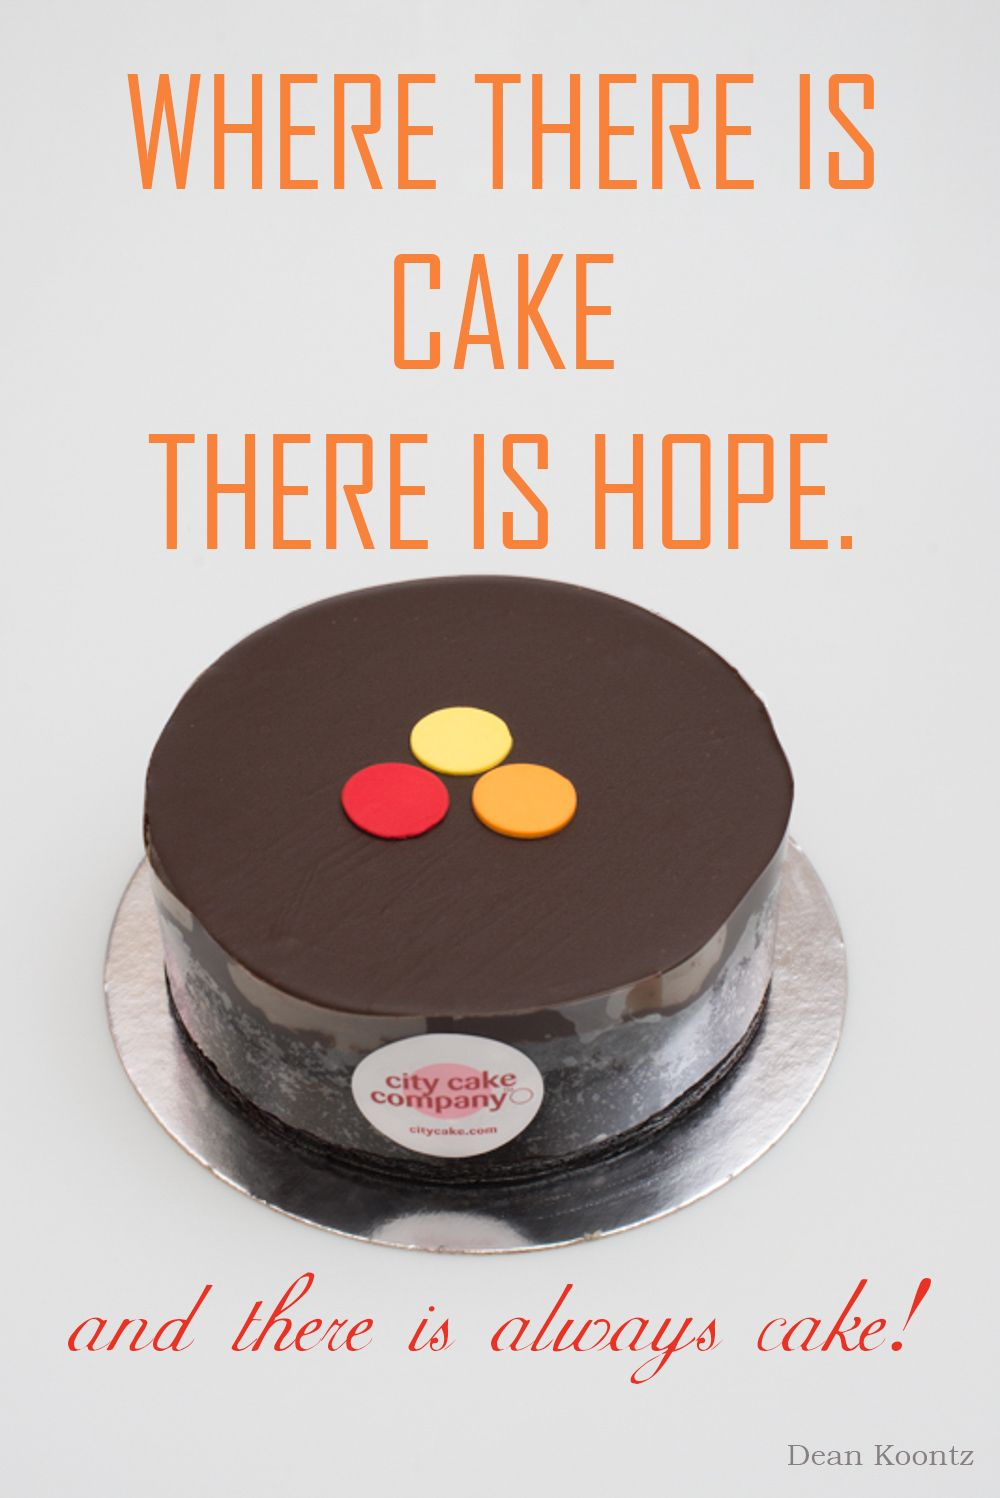 Where there is cake, there is hope. www.citycake.com